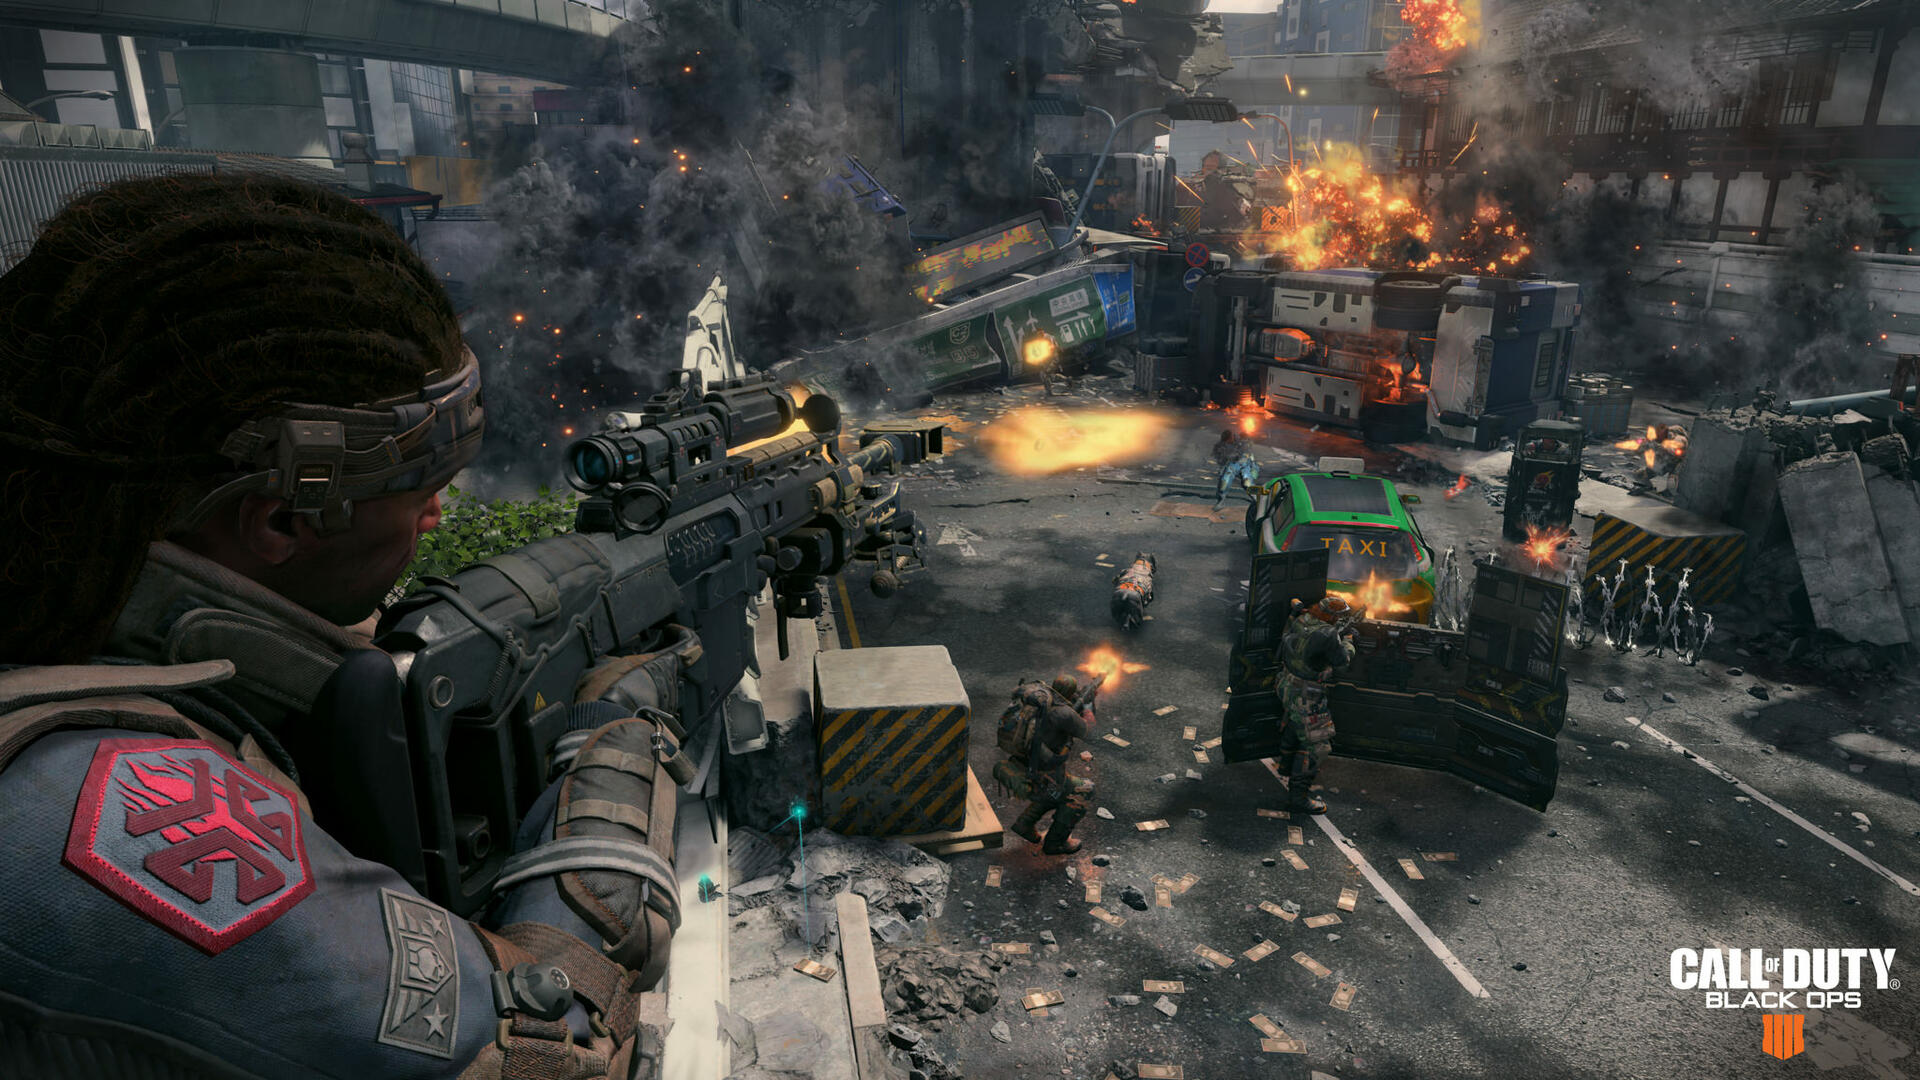 Call of Duty: Black Ops 4 Beta PC Minimum and Recommended Specs Revealed